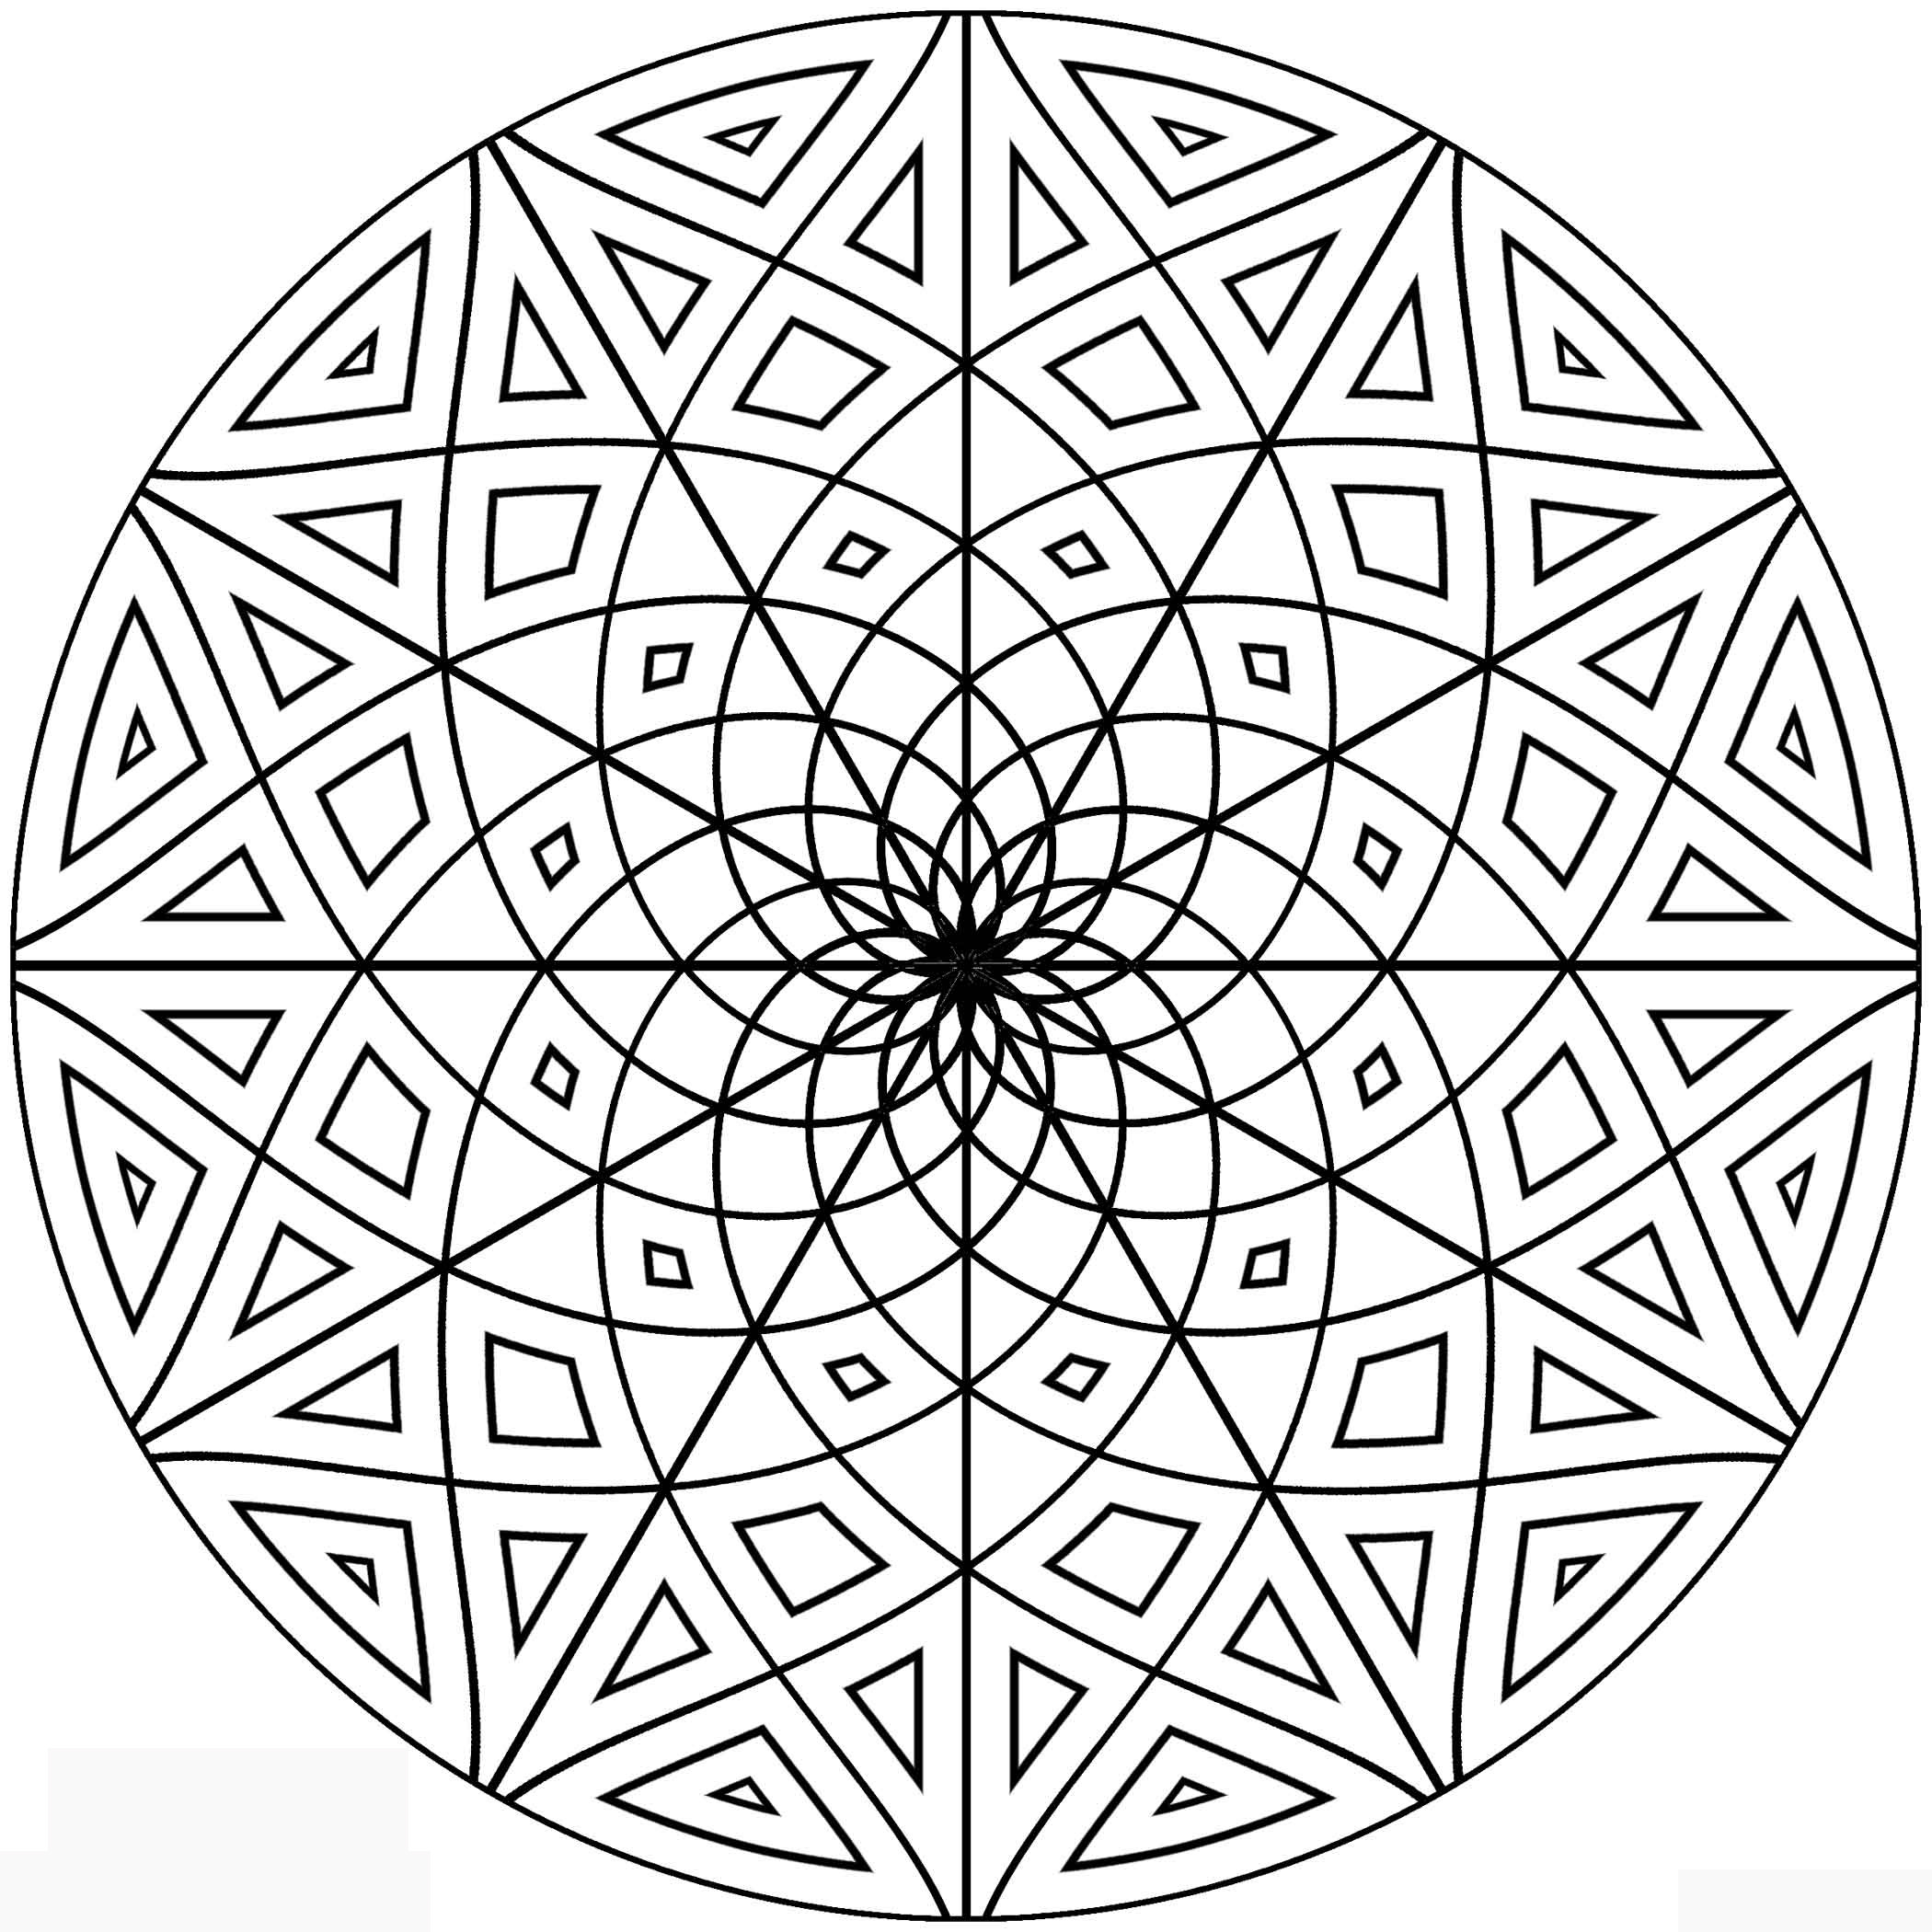 free geometric pattern coloring pages free printable geometric coloring pages for kids free pattern coloring geometric pages